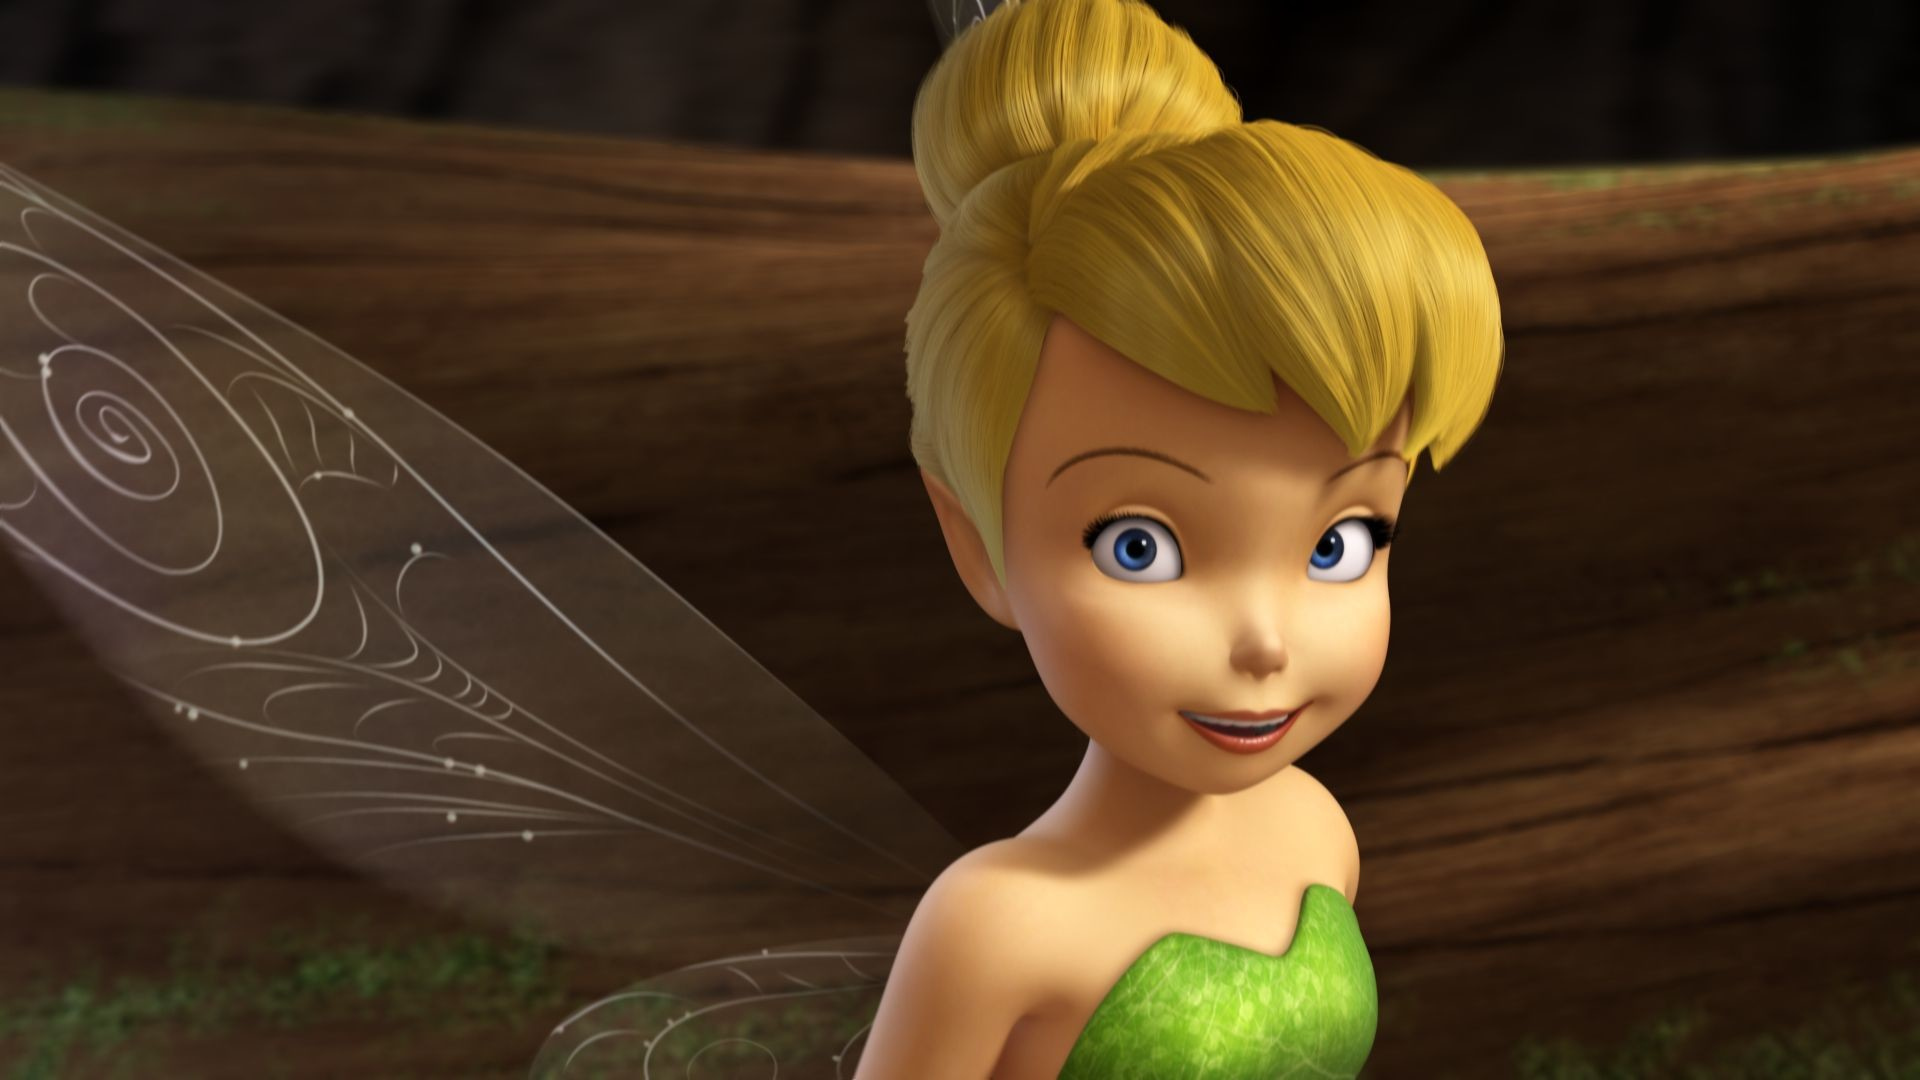 1920x1080 Wallpaper backgrounds, Backgrounds and Google on Wallpaper Gallery · Desktop  Tinkerbell ...